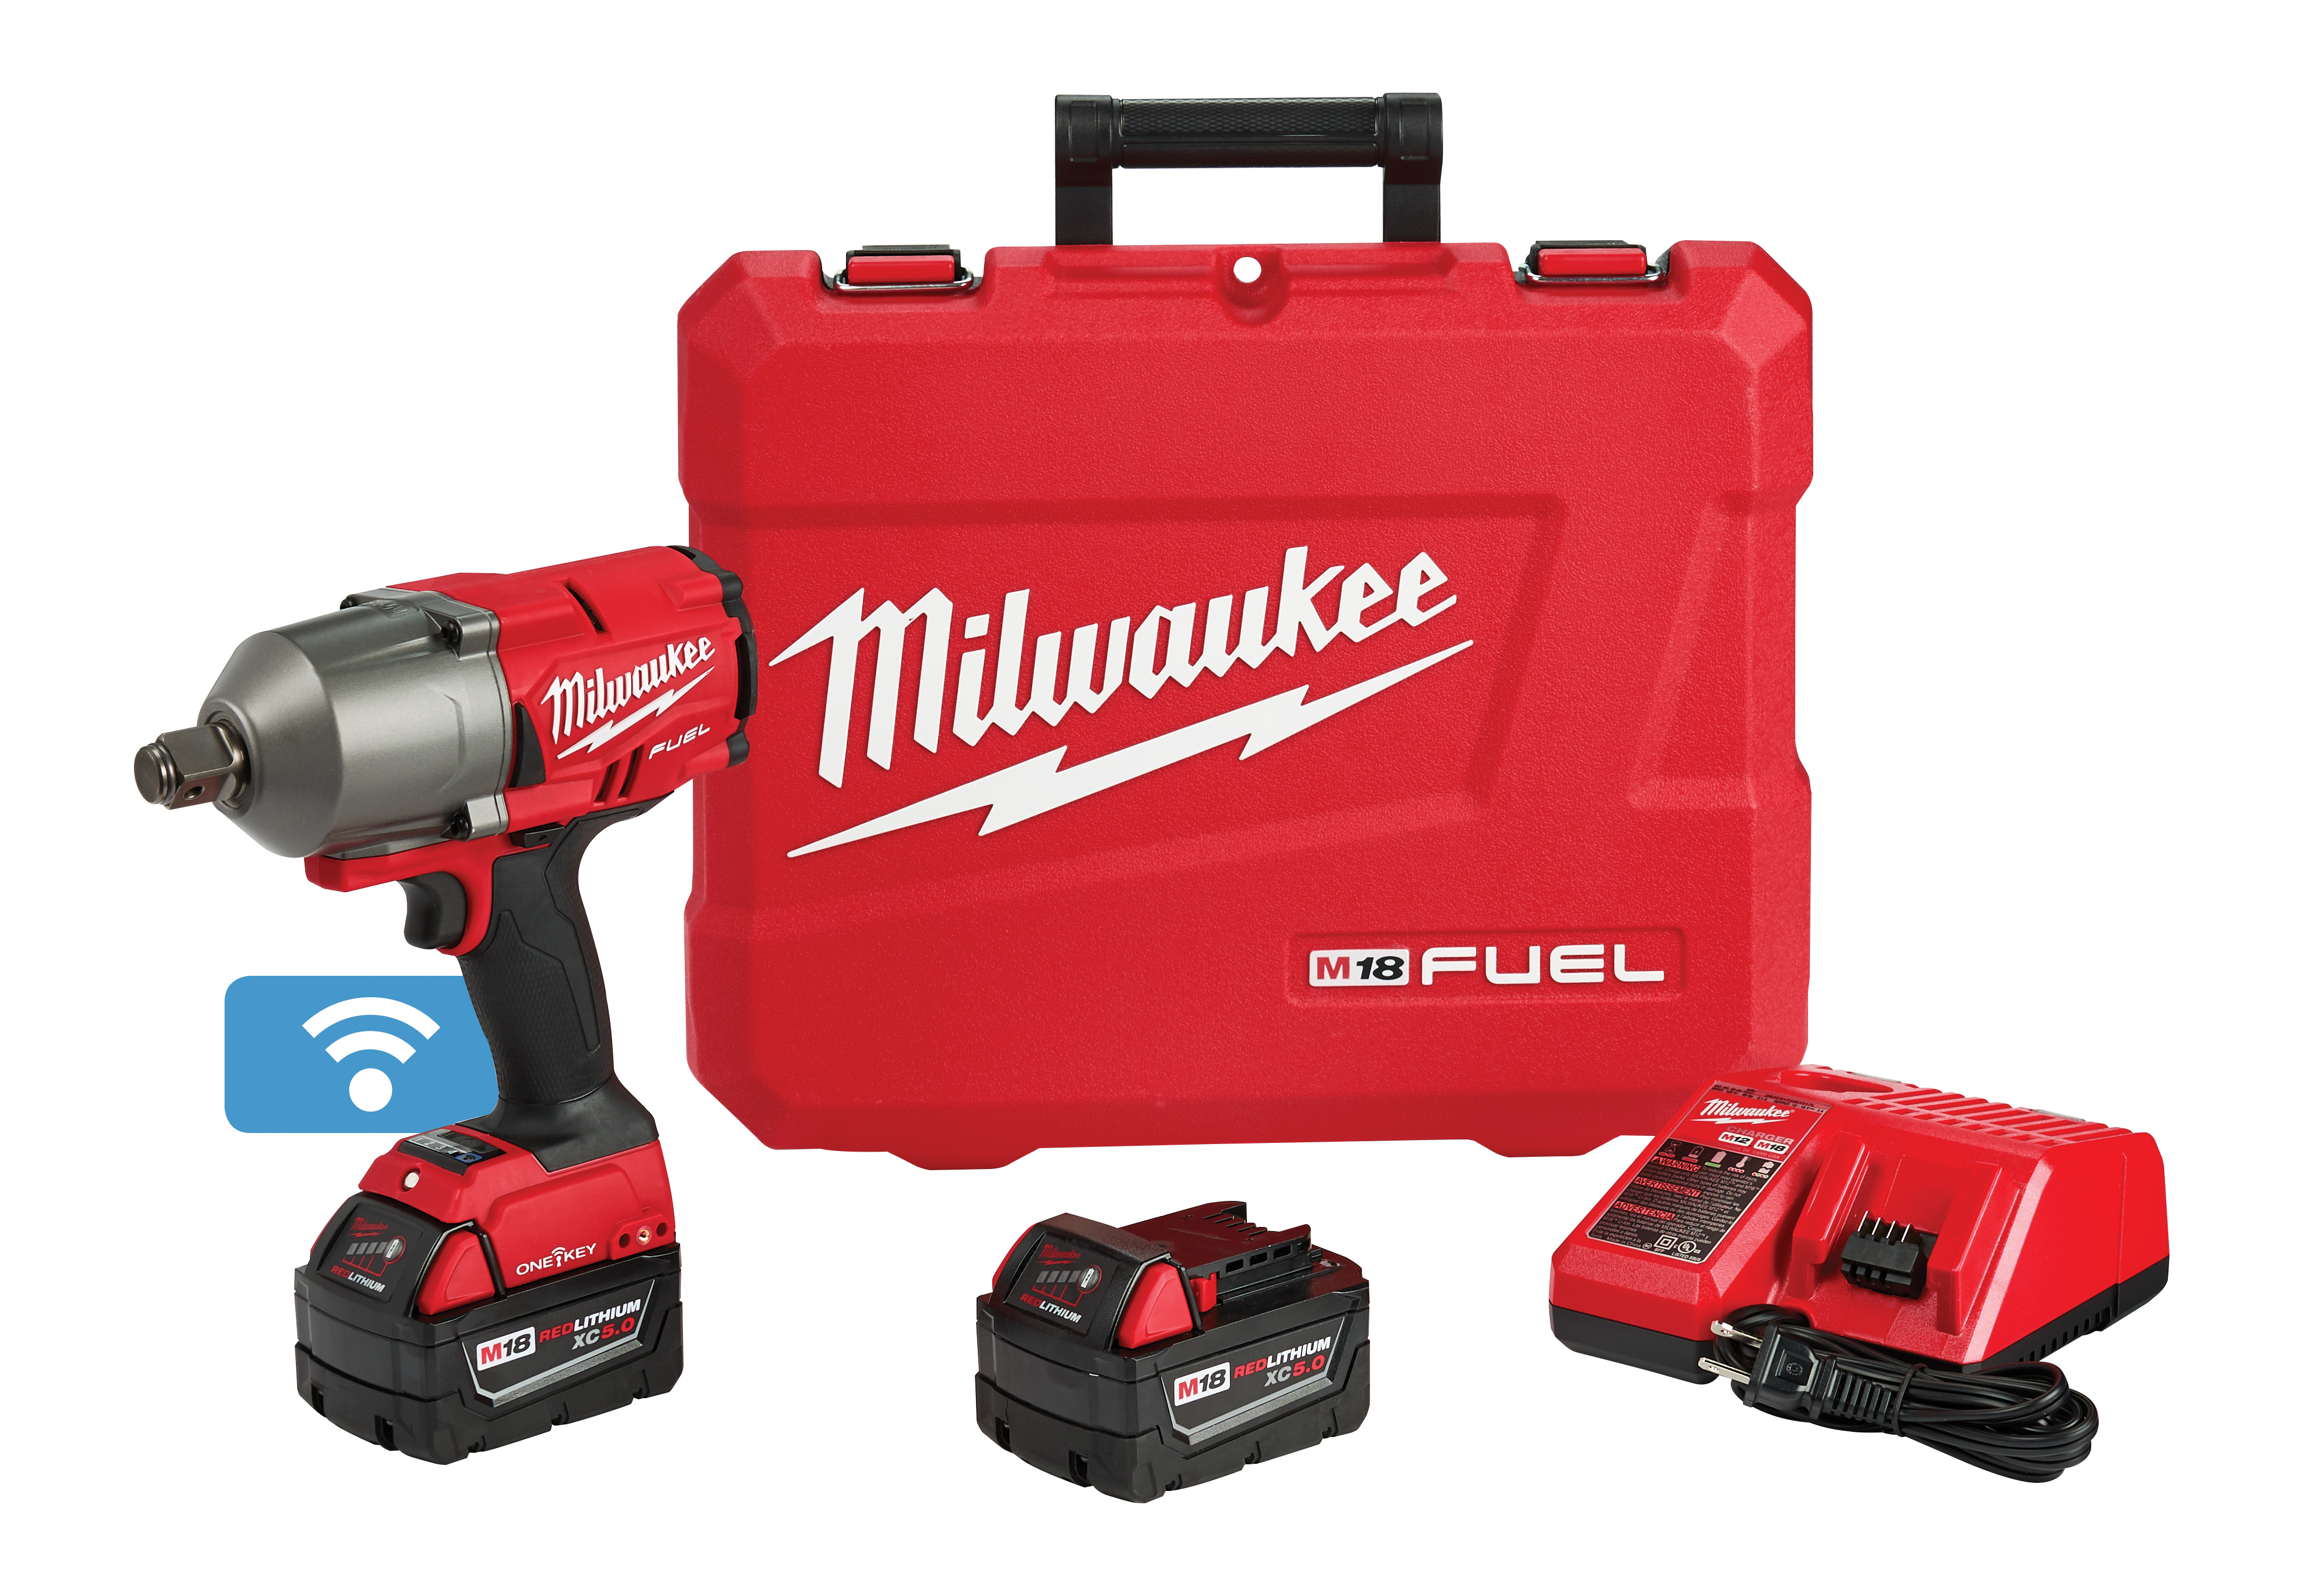 Milwaukee® M18 FUEL™ ONE-KEY™ 2864-22 Cordless High Torque Impact Wrench, 3/4 in 4-Mode Straight Drive, 2100 bpm, 1200/1500 ft-lb, 18 VDC, 8.59 in OAL